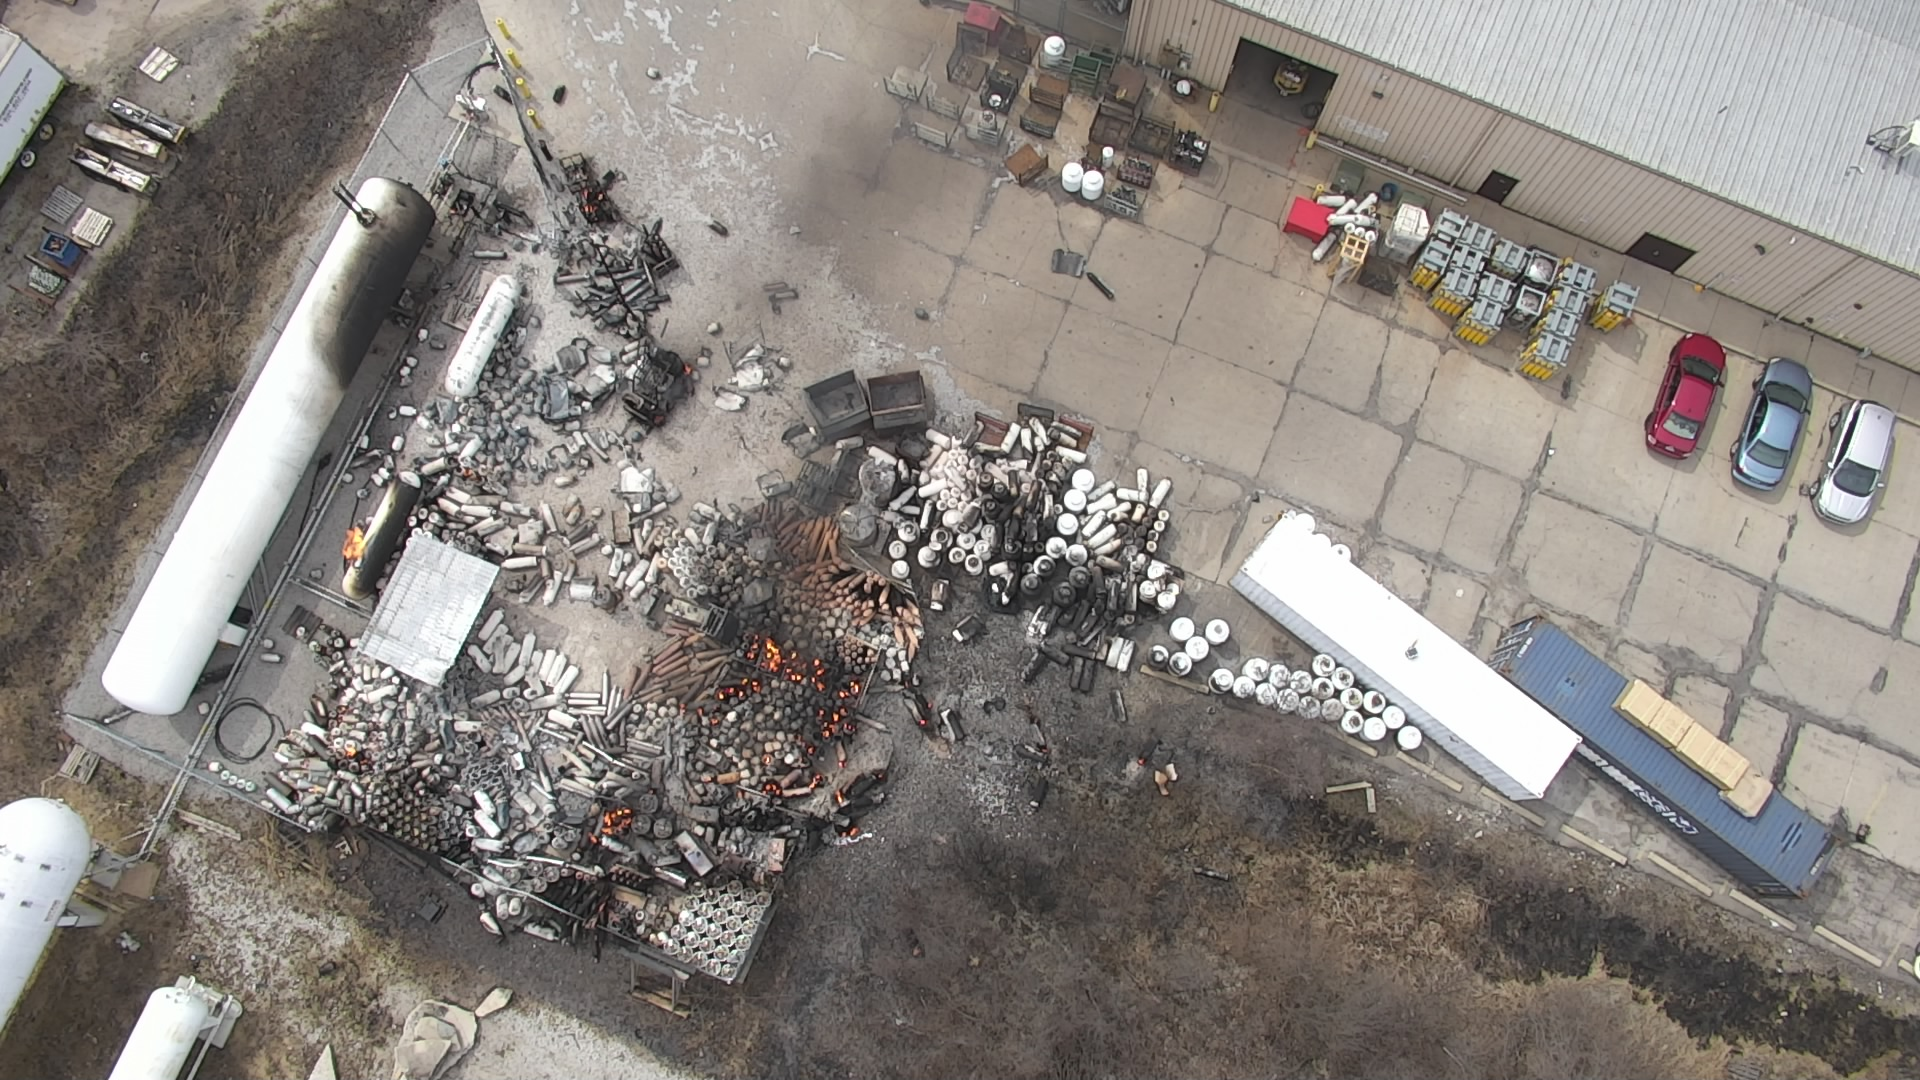 How a $30,000 drone kept firefighters safe during explosive welding company fire